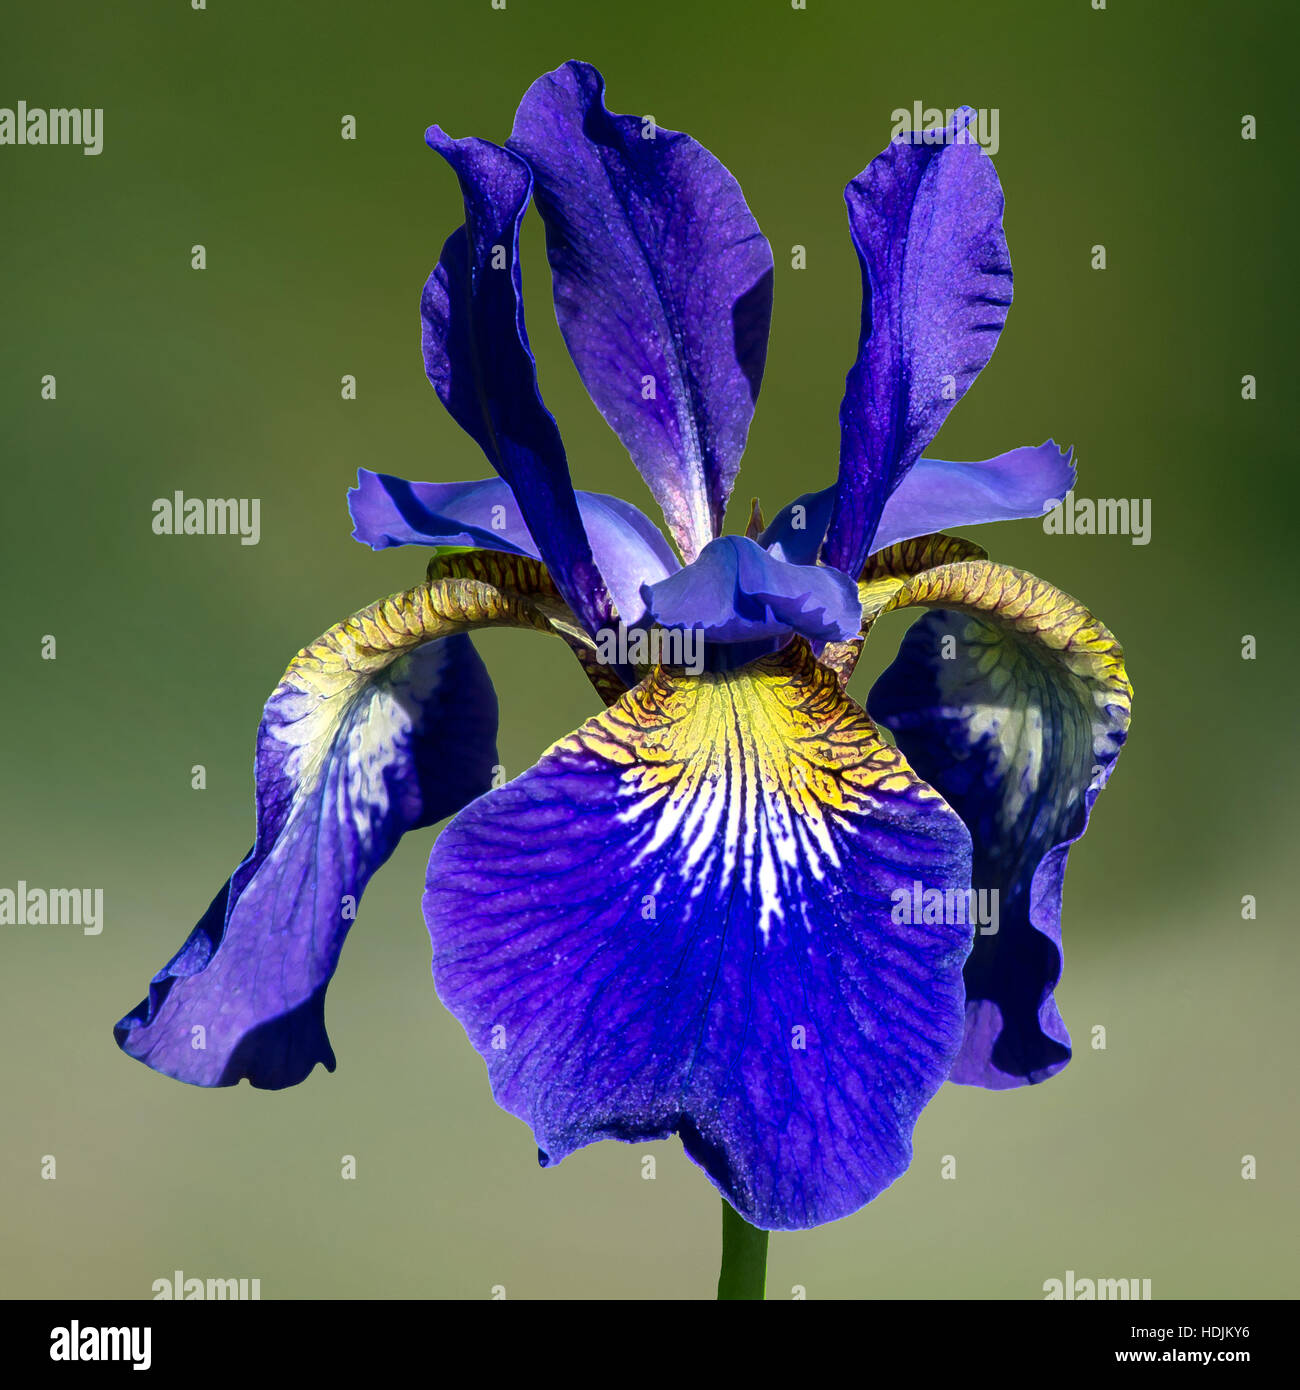 The Coloful Siberian Iris A Perennial Plant With Purple Blue Flowers